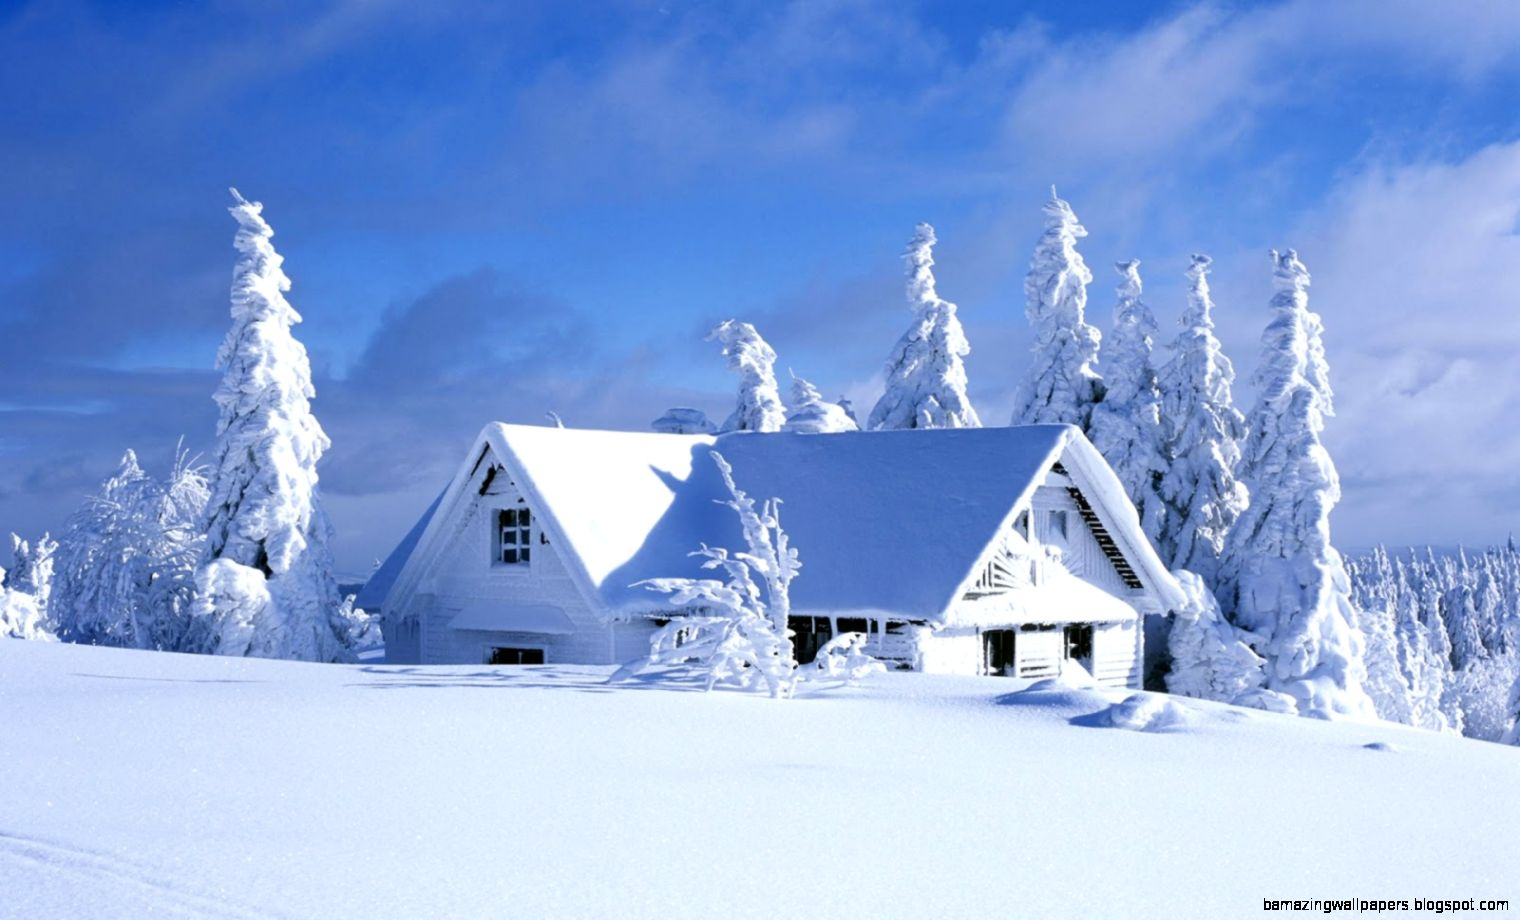 Beautiful Winter Desktop Wallpaper   WallpaperSafari